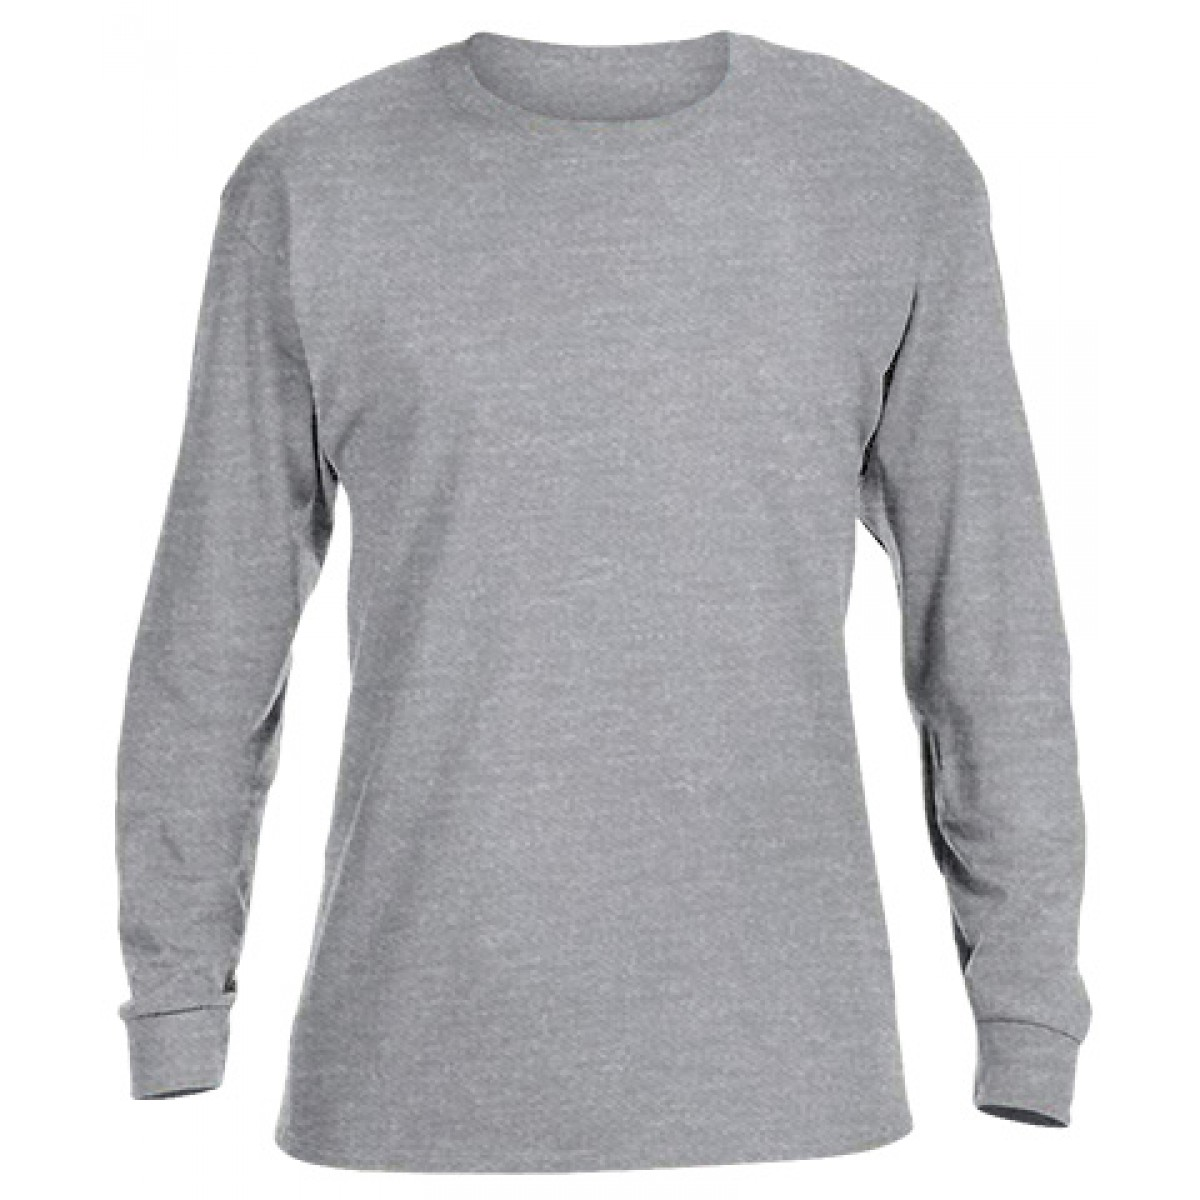 Basic Long Sleeve Crew Neck -Ash Gray-3XL